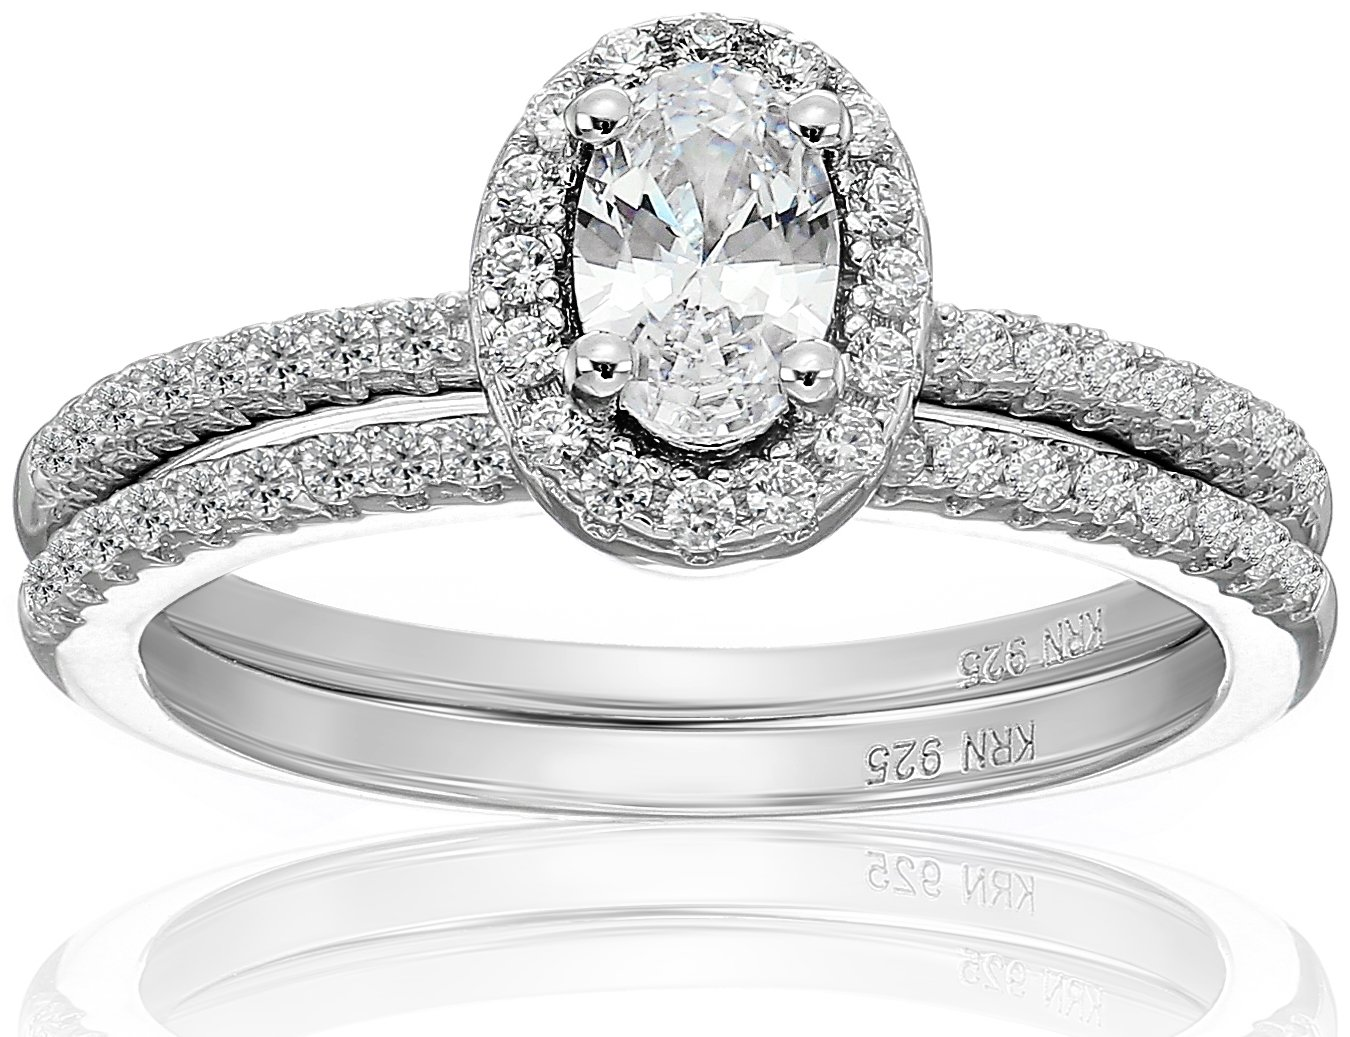 Amazon Collection Cubic Zirconia Oval Frame Bridal Set in Sterling Silver Wedding Ring, Size 6